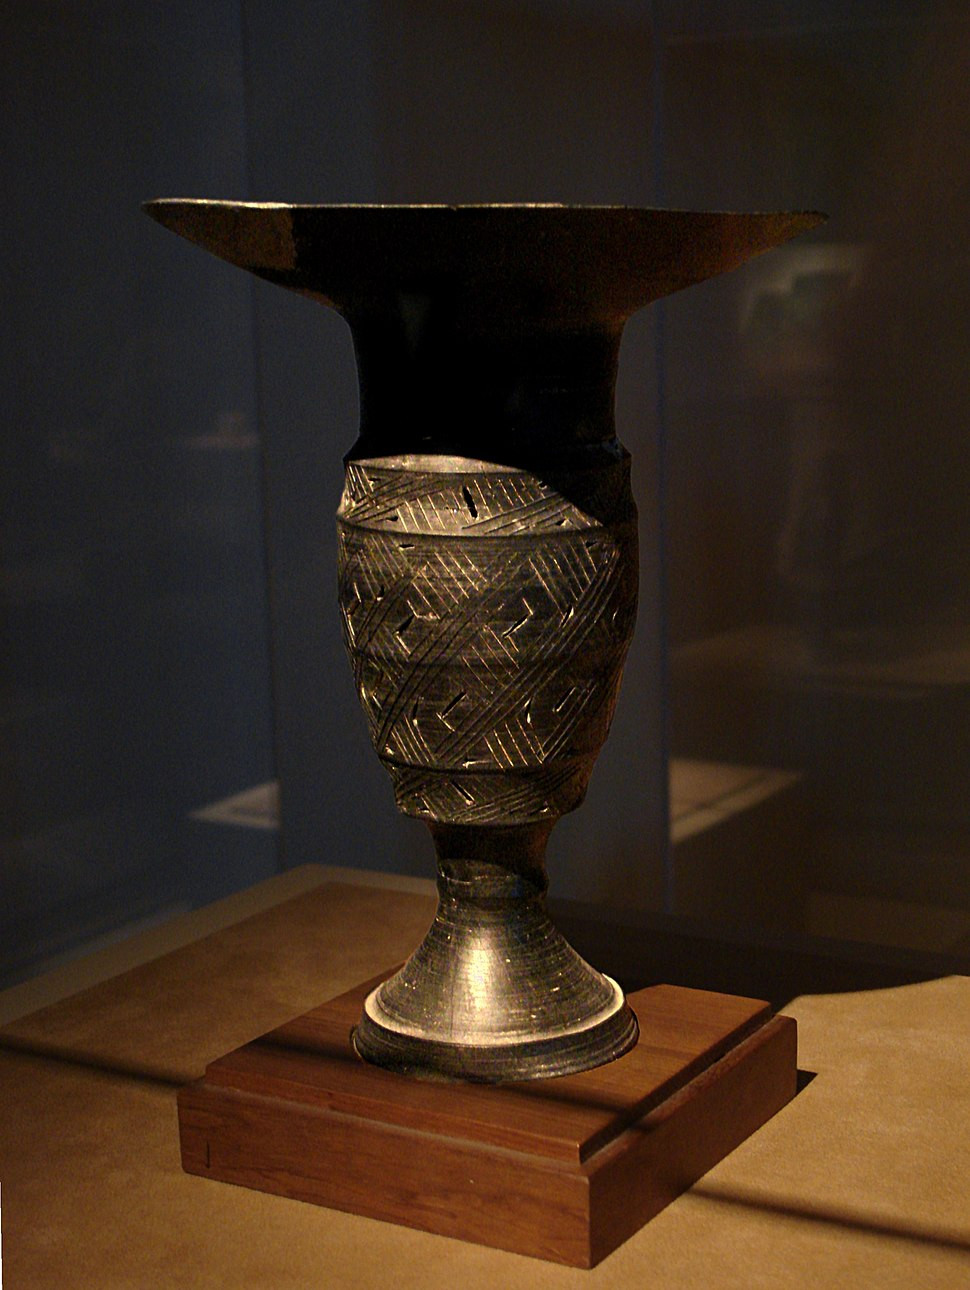 Song Dynasty Vase Of Chinese Ceramics Howling Pixel Regarding Cmoc Treasures Of Ancient China Exhibit Black Pottery Goblet